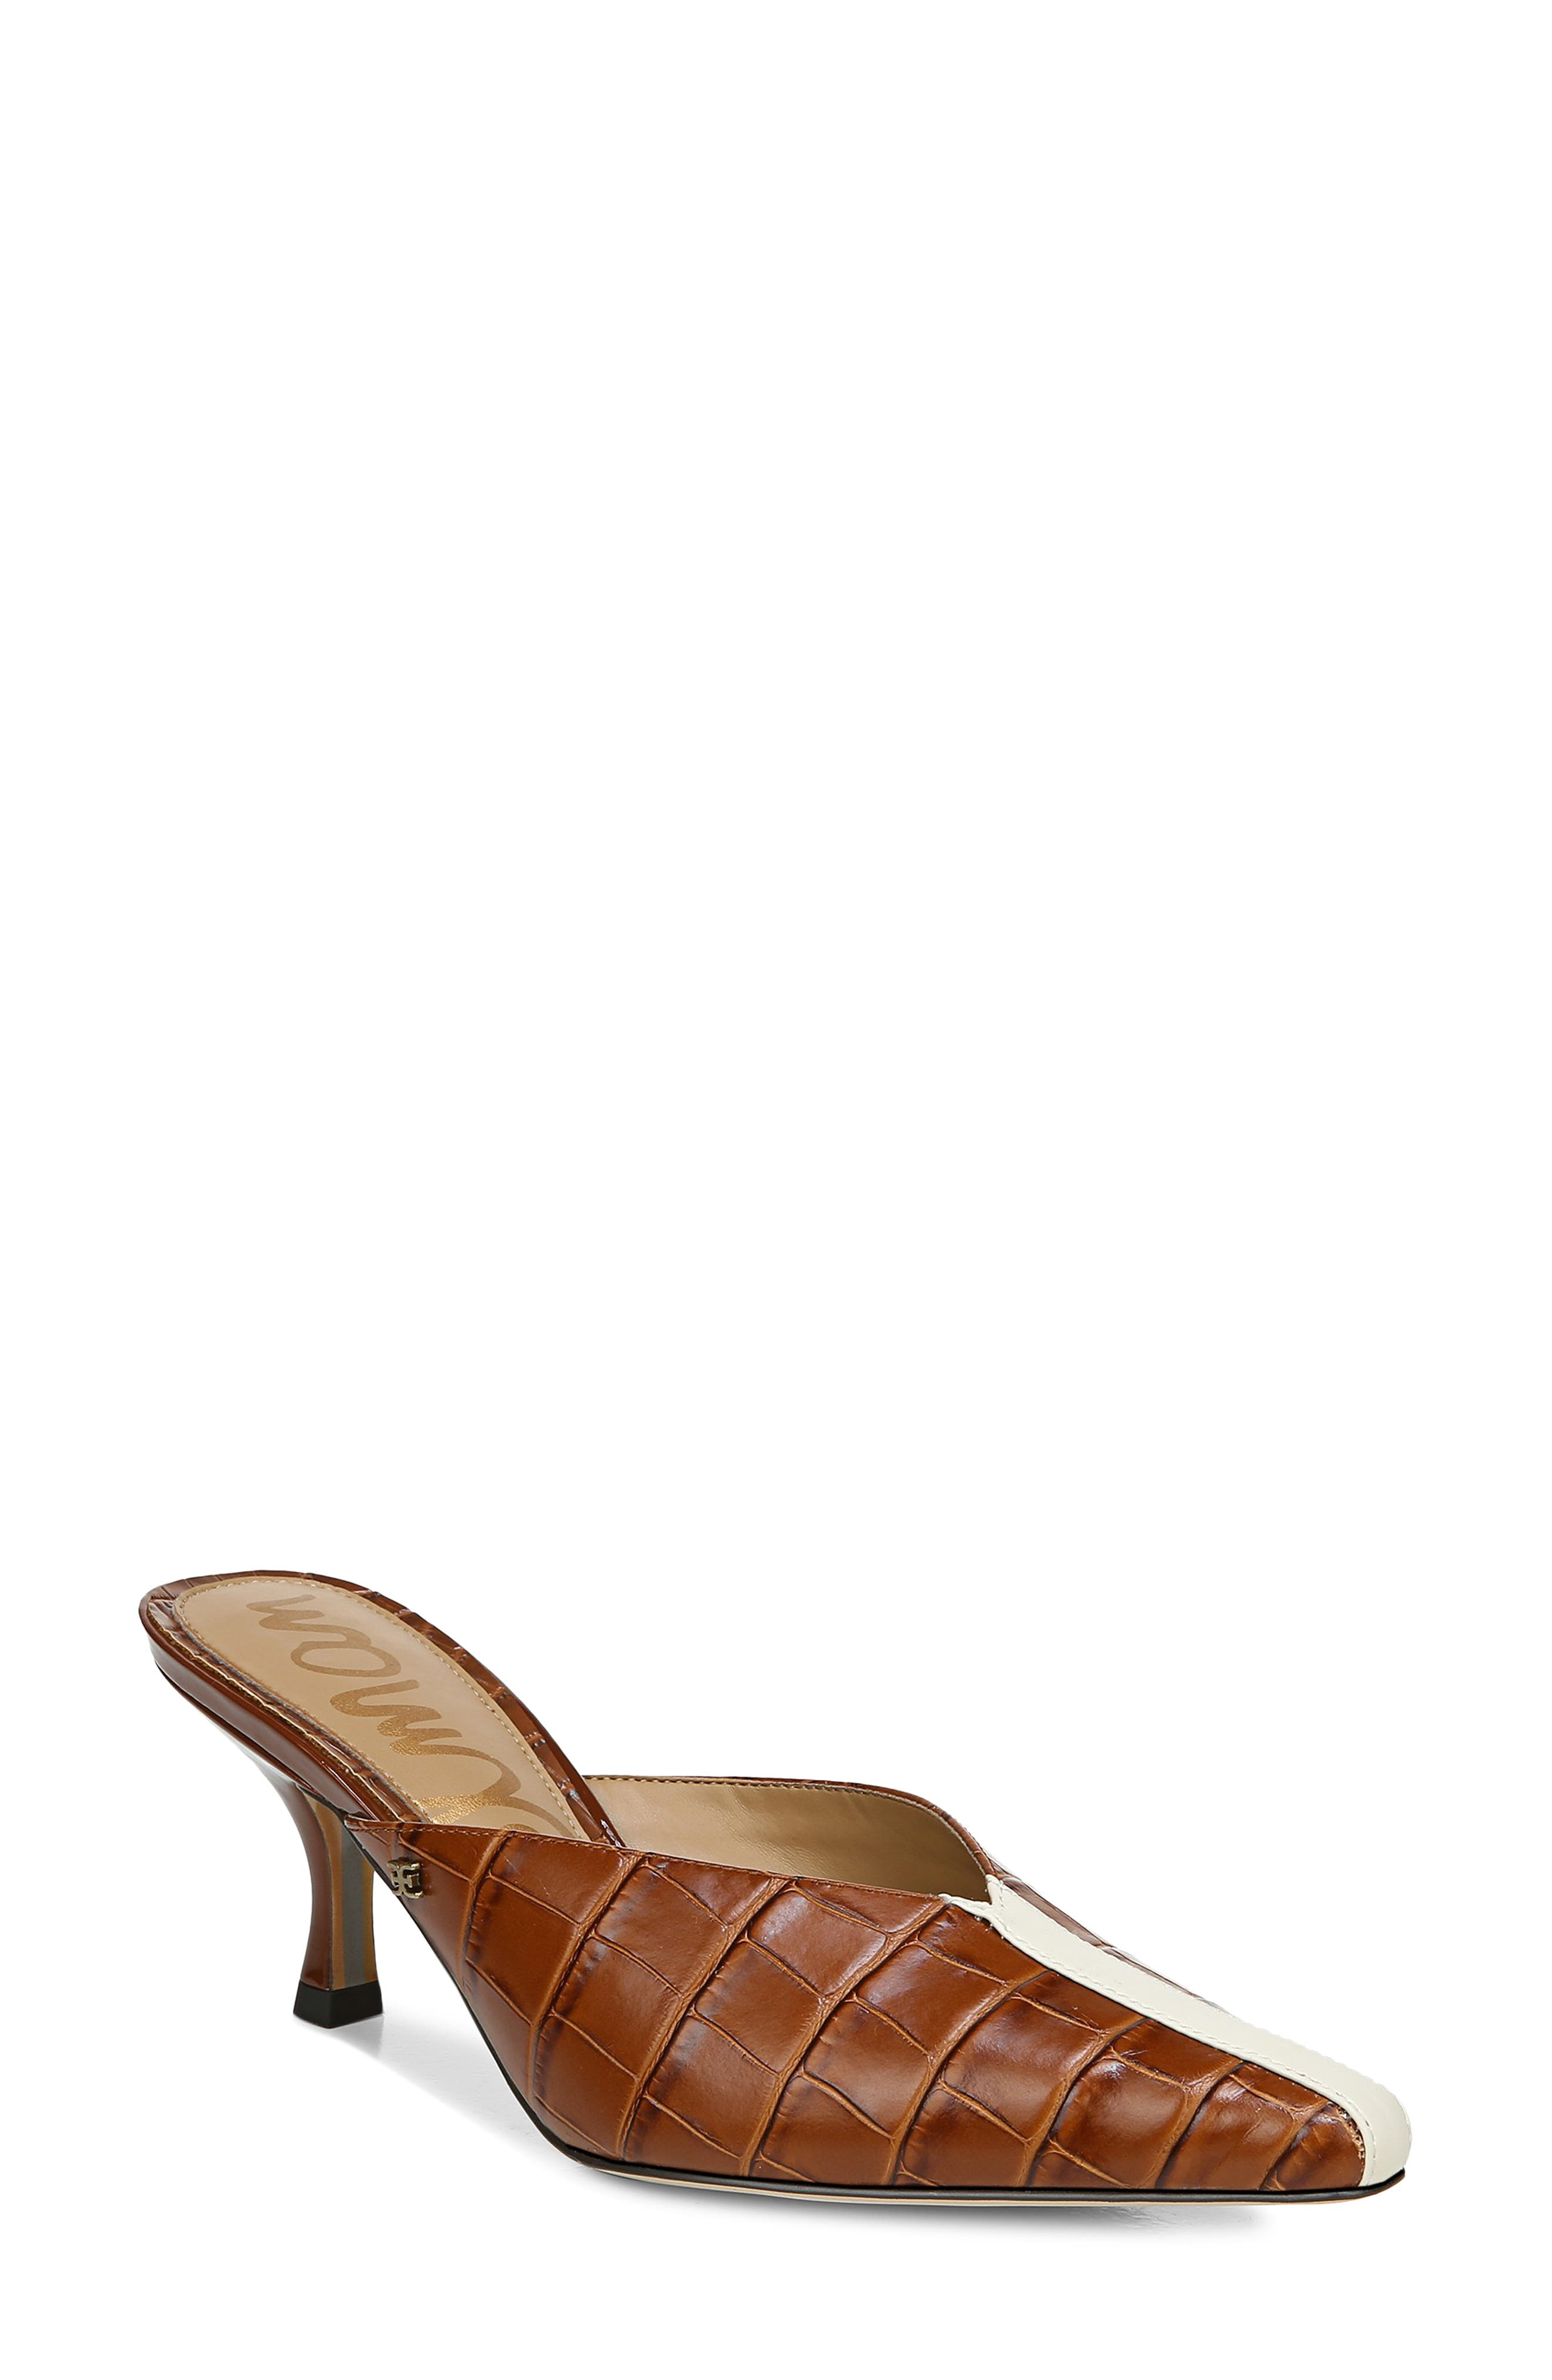 Contrast stitching runs up the pointy toe and lends a sophisticated racer touch to this fierce mule set on a low, sculpted heel. Style Name: Sam Edelman Tev Mule (Women). Style Number: 6065317. Available in stores.